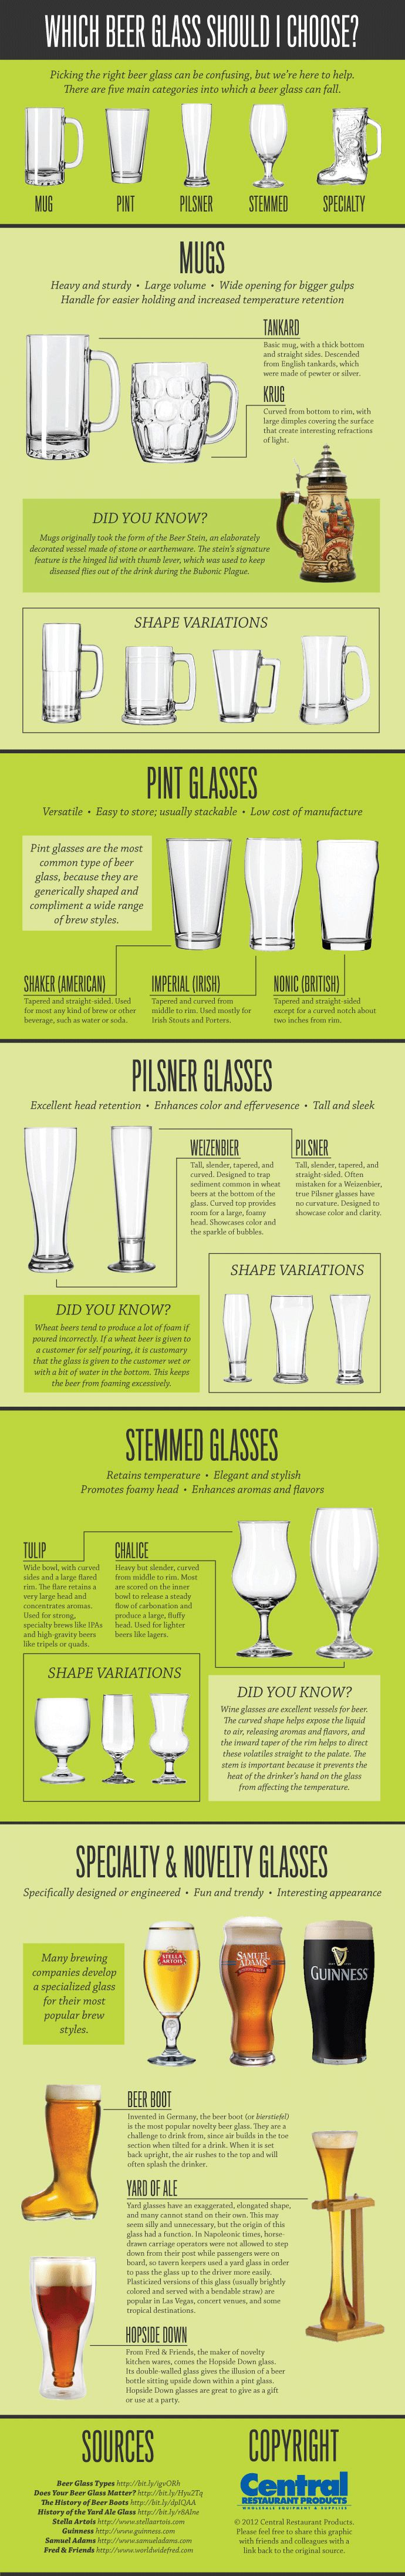 Infographic: which beer glass should I choose?